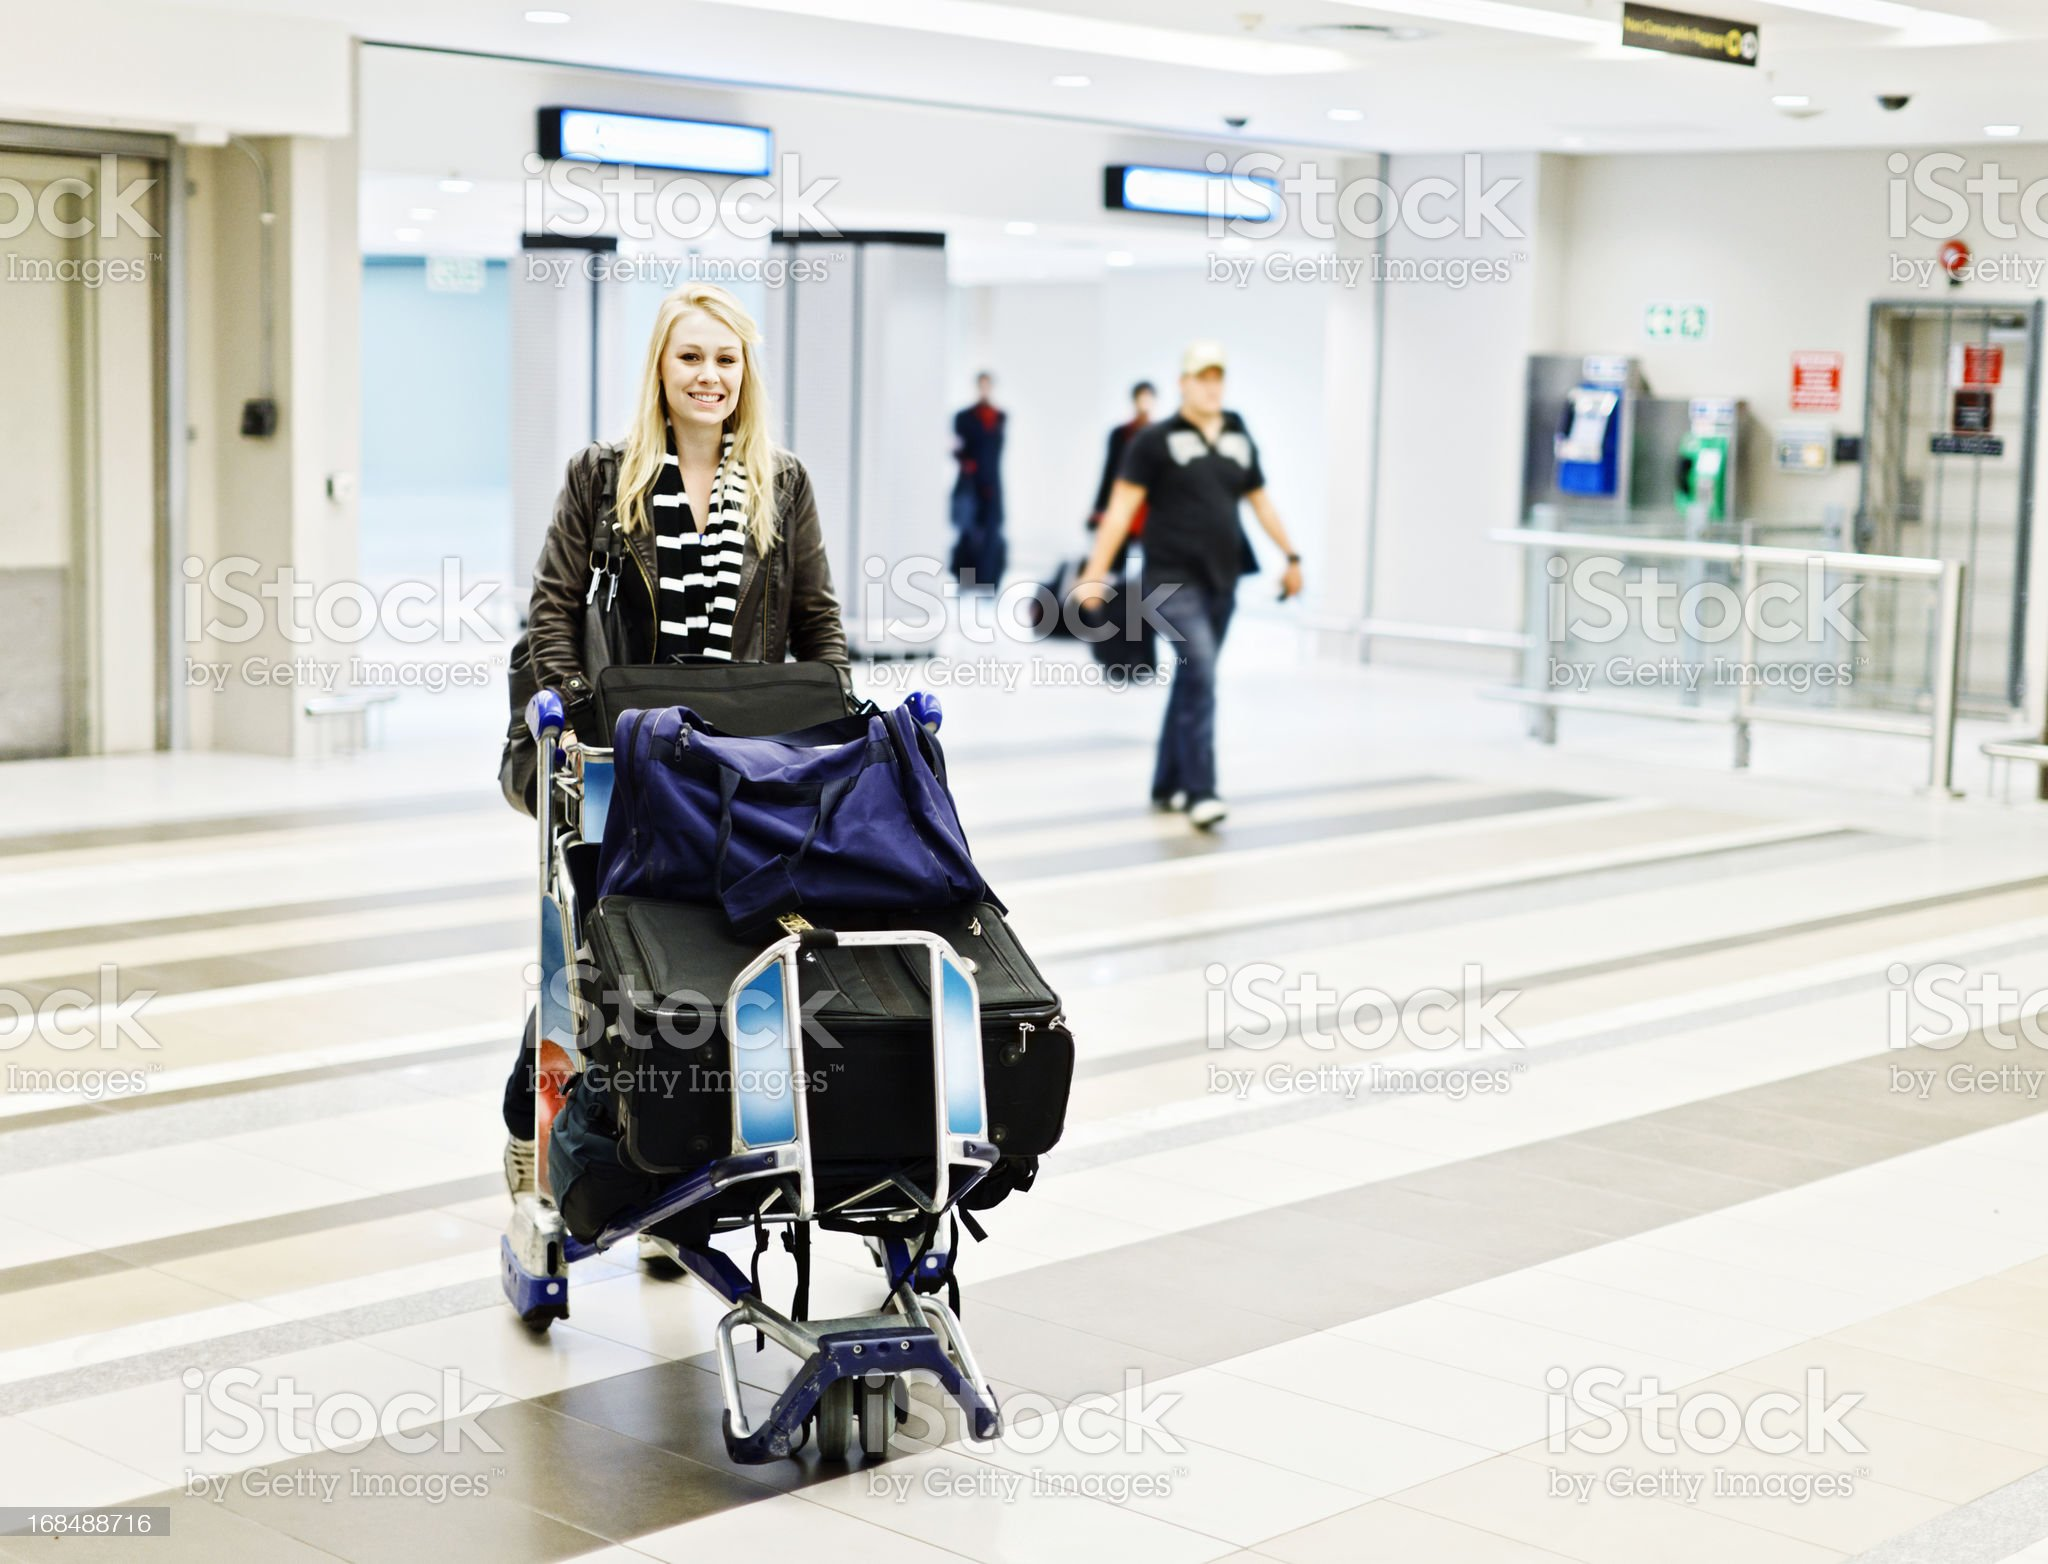 Pretty blonde wheels her laden luggage cart through airport concourse royalty-free stock photo